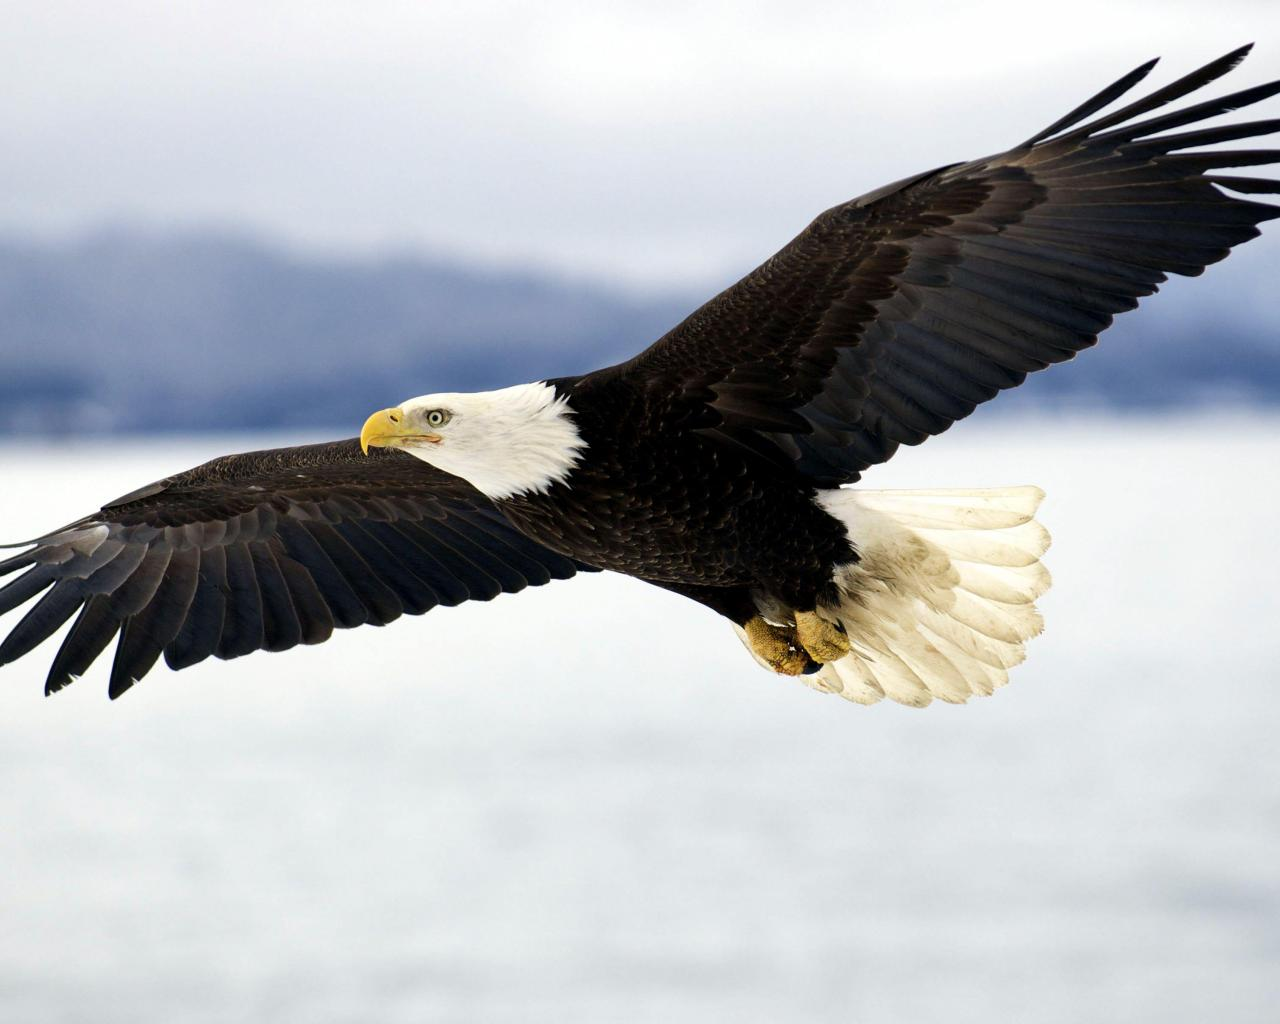 eagle 1280x1024 wallpaper - photo #17